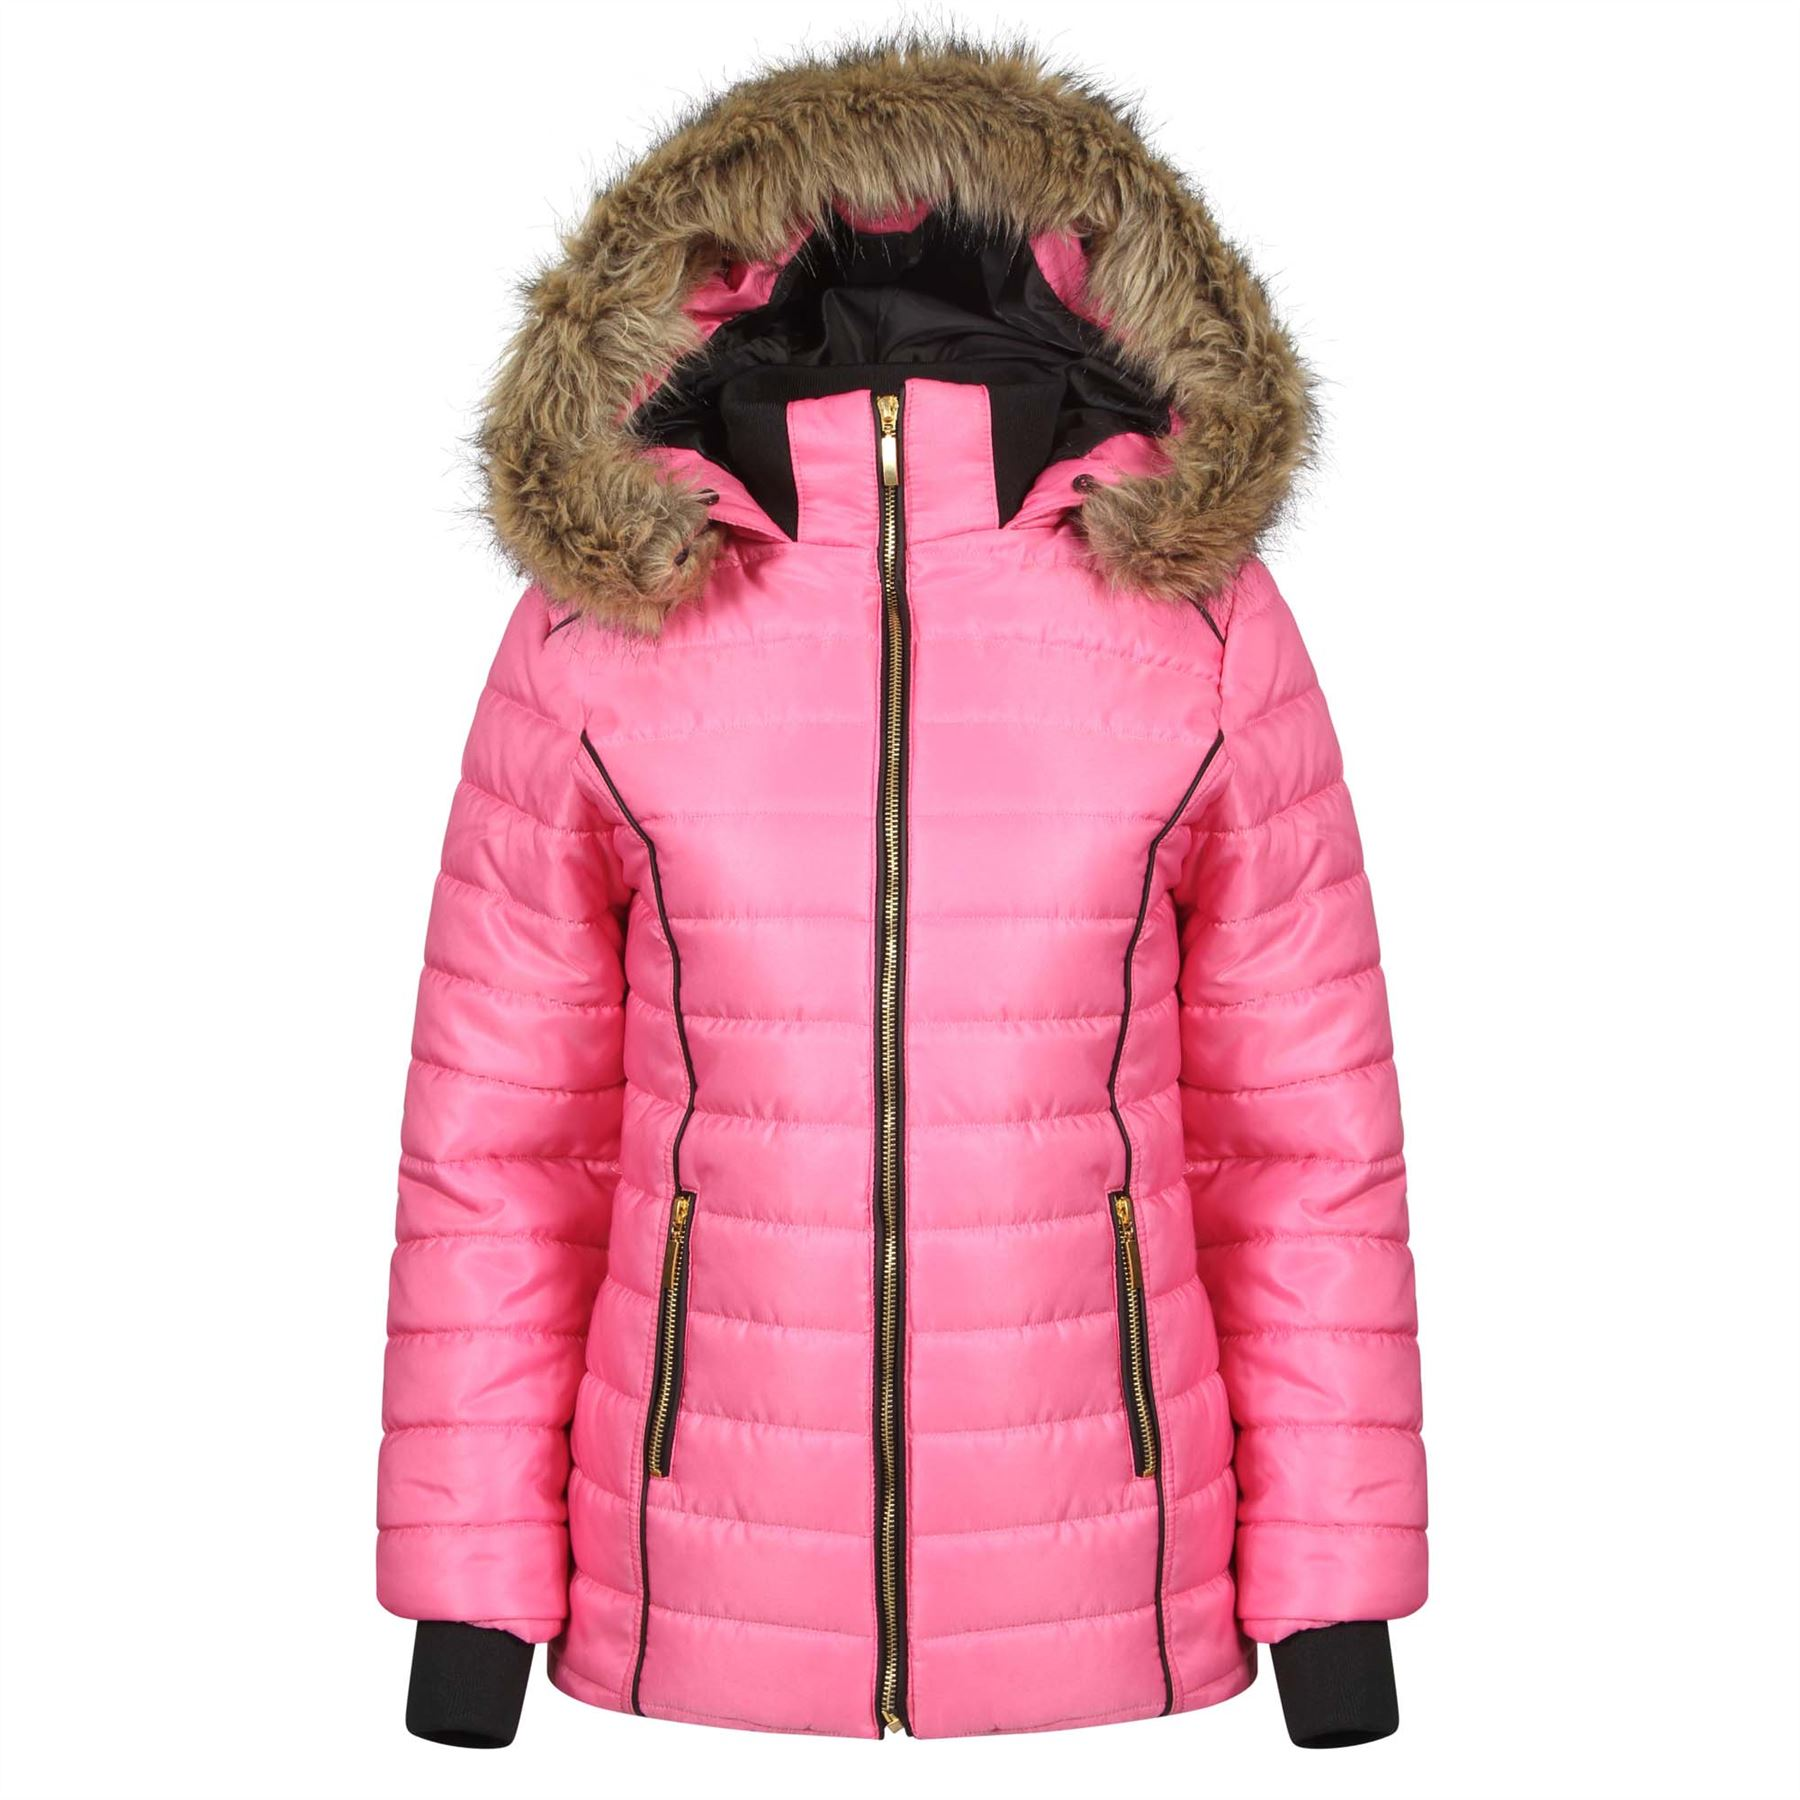 Ladies quilted puffer jacket